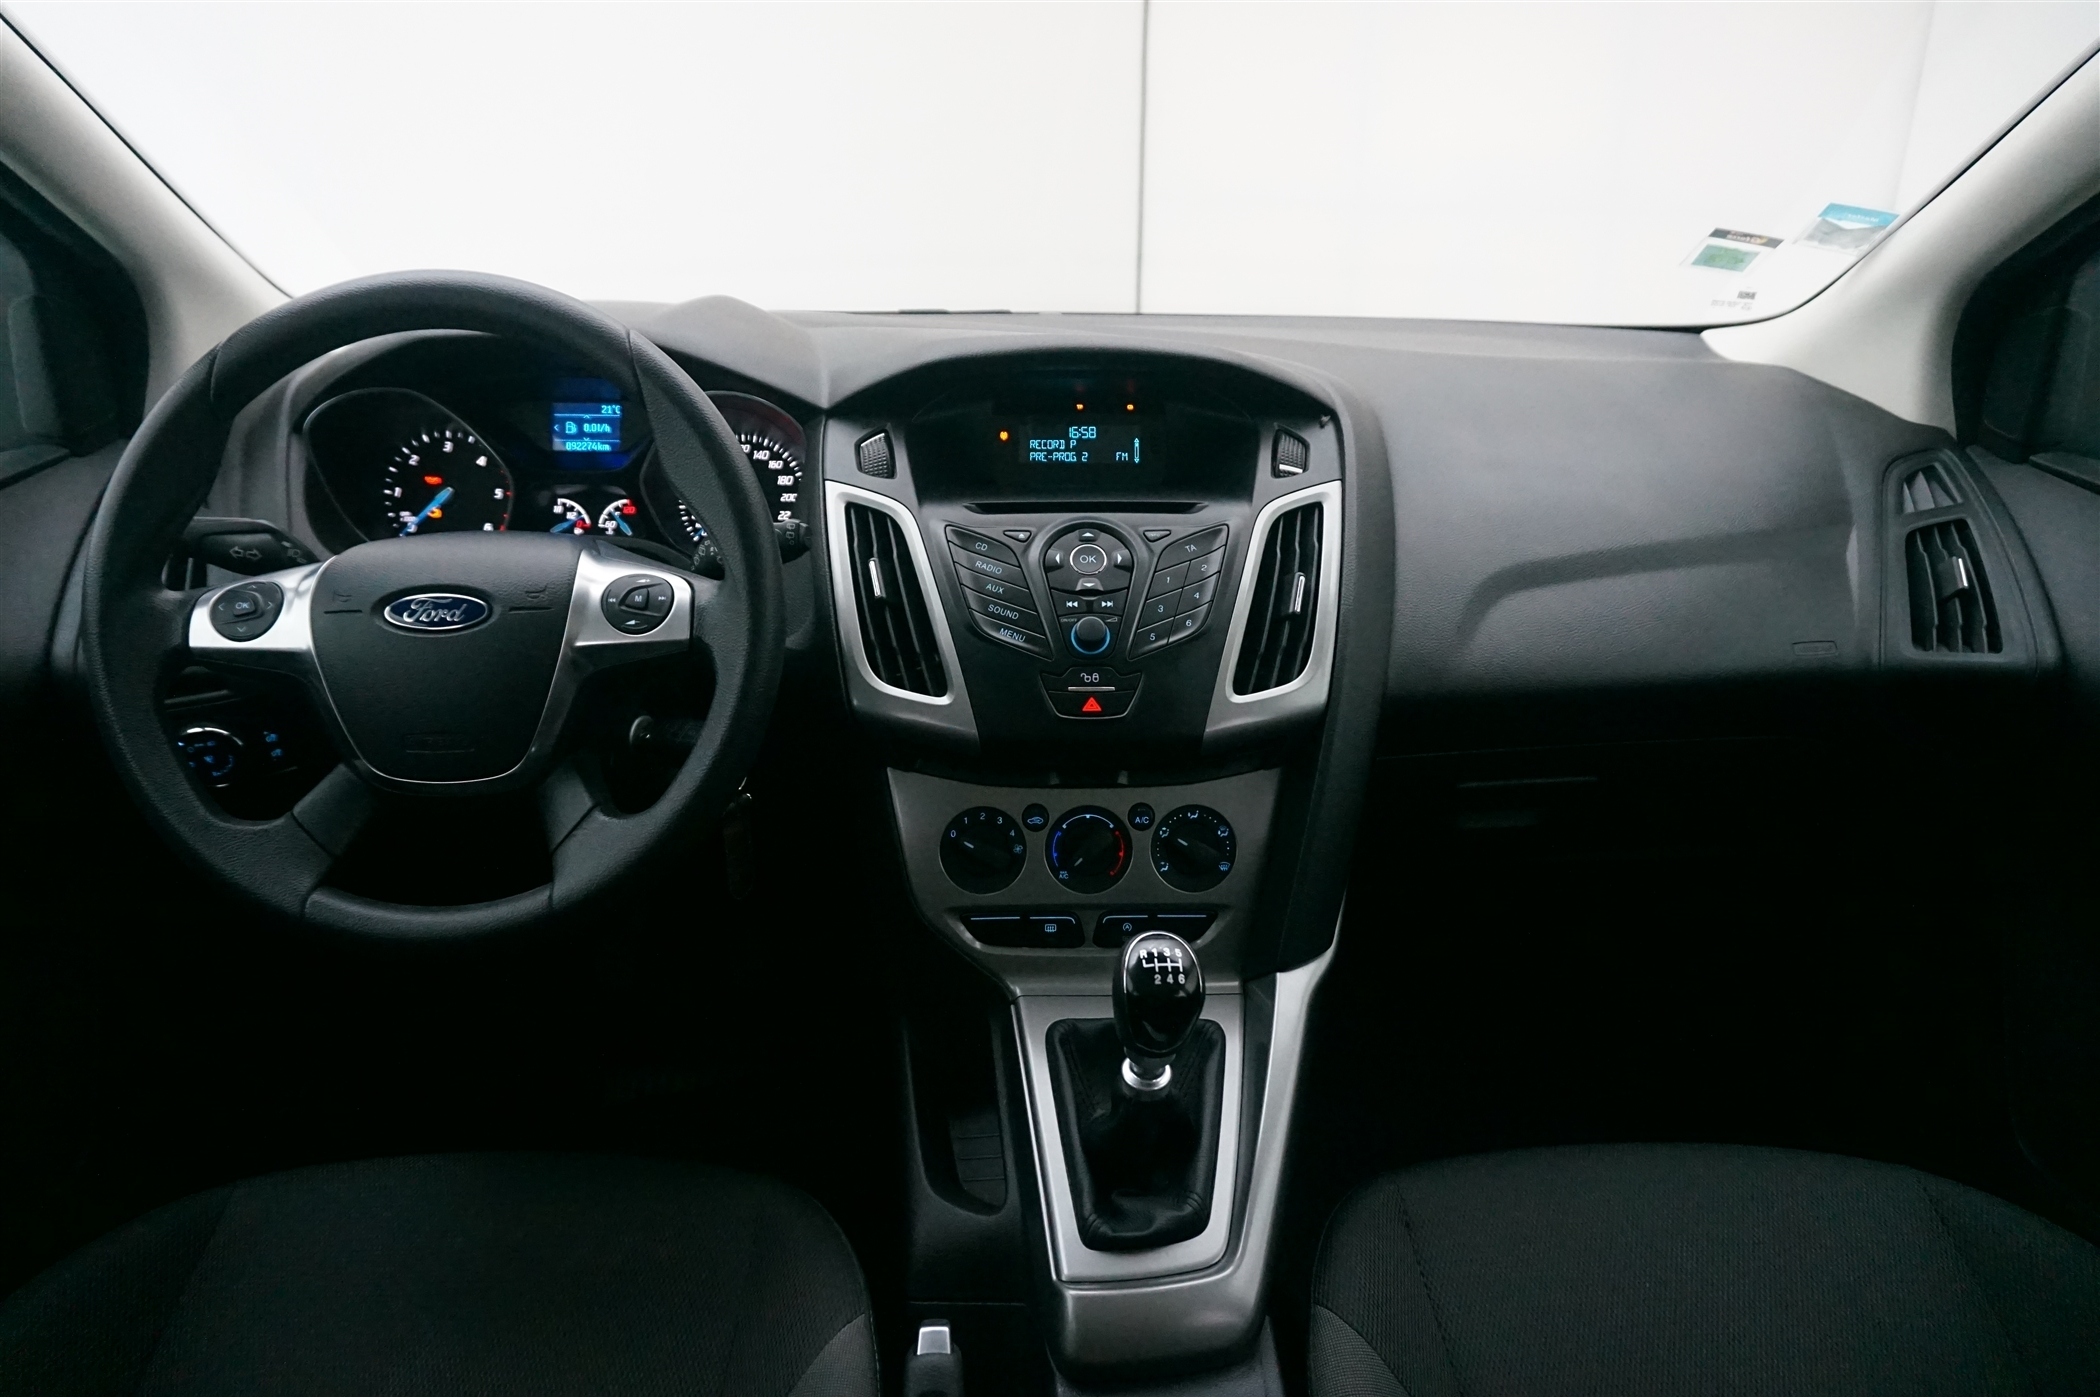 Ford Focus Station 1.6 TDCI Trend